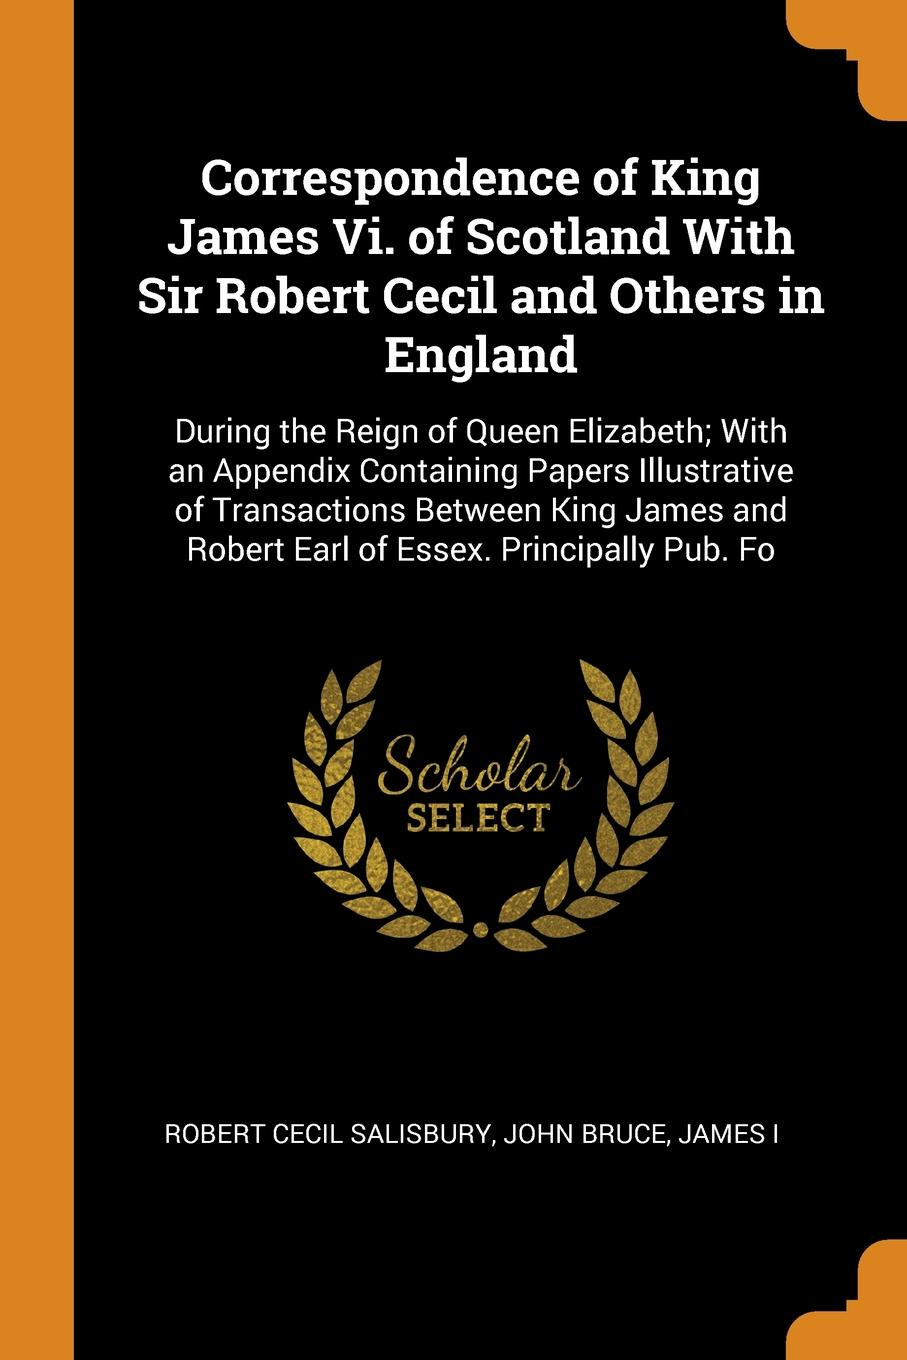 Robert Cecil Salisbury, John Bruce, James I Correspondence of King James Vi. of Scotland With Sir Robert Cecil and Others in England. During the Reign of Queen Elizabeth; With an Appendix Containing Papers Illustrative of Transactions Between King James and Robert Earl of Essex. Principally... стоимость